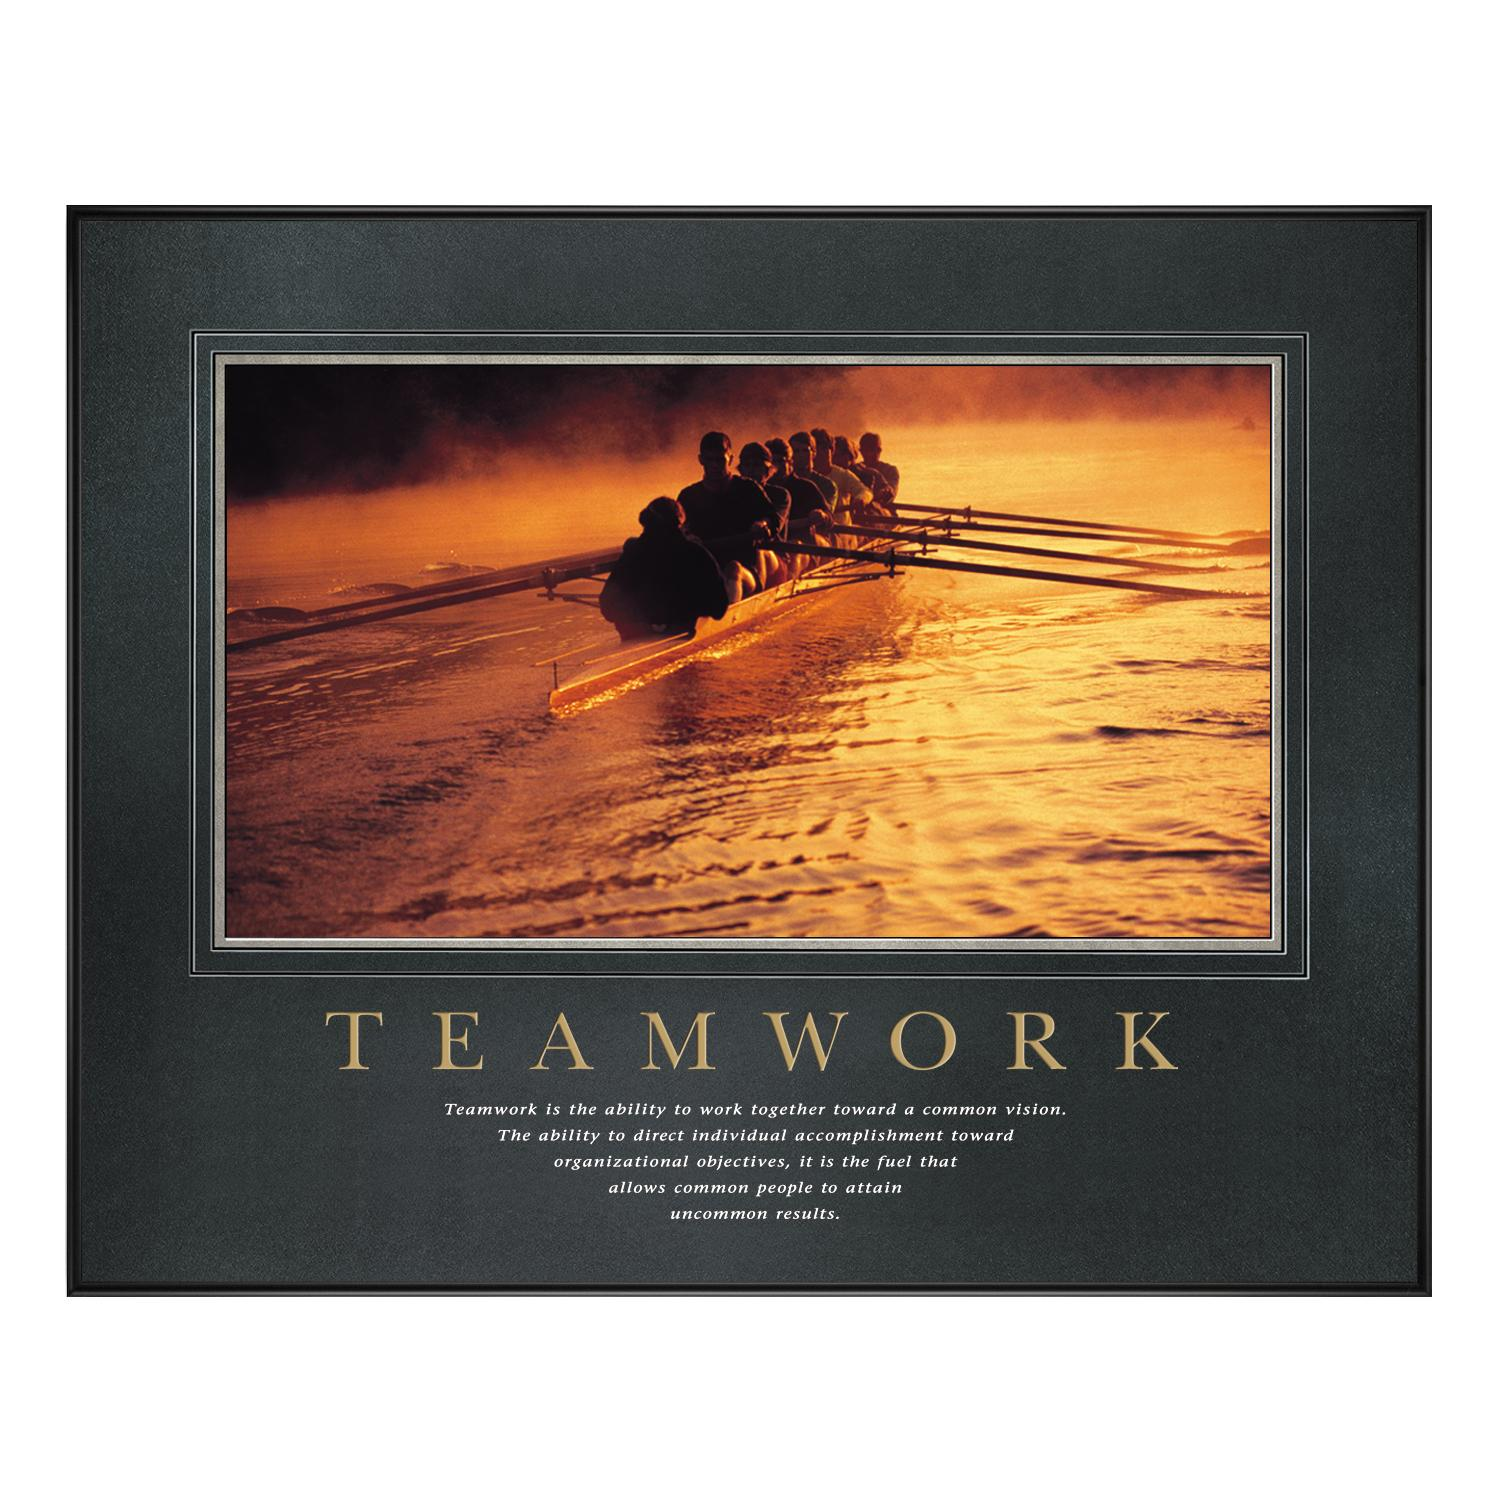 Teamwork Rowers Motivational Poster